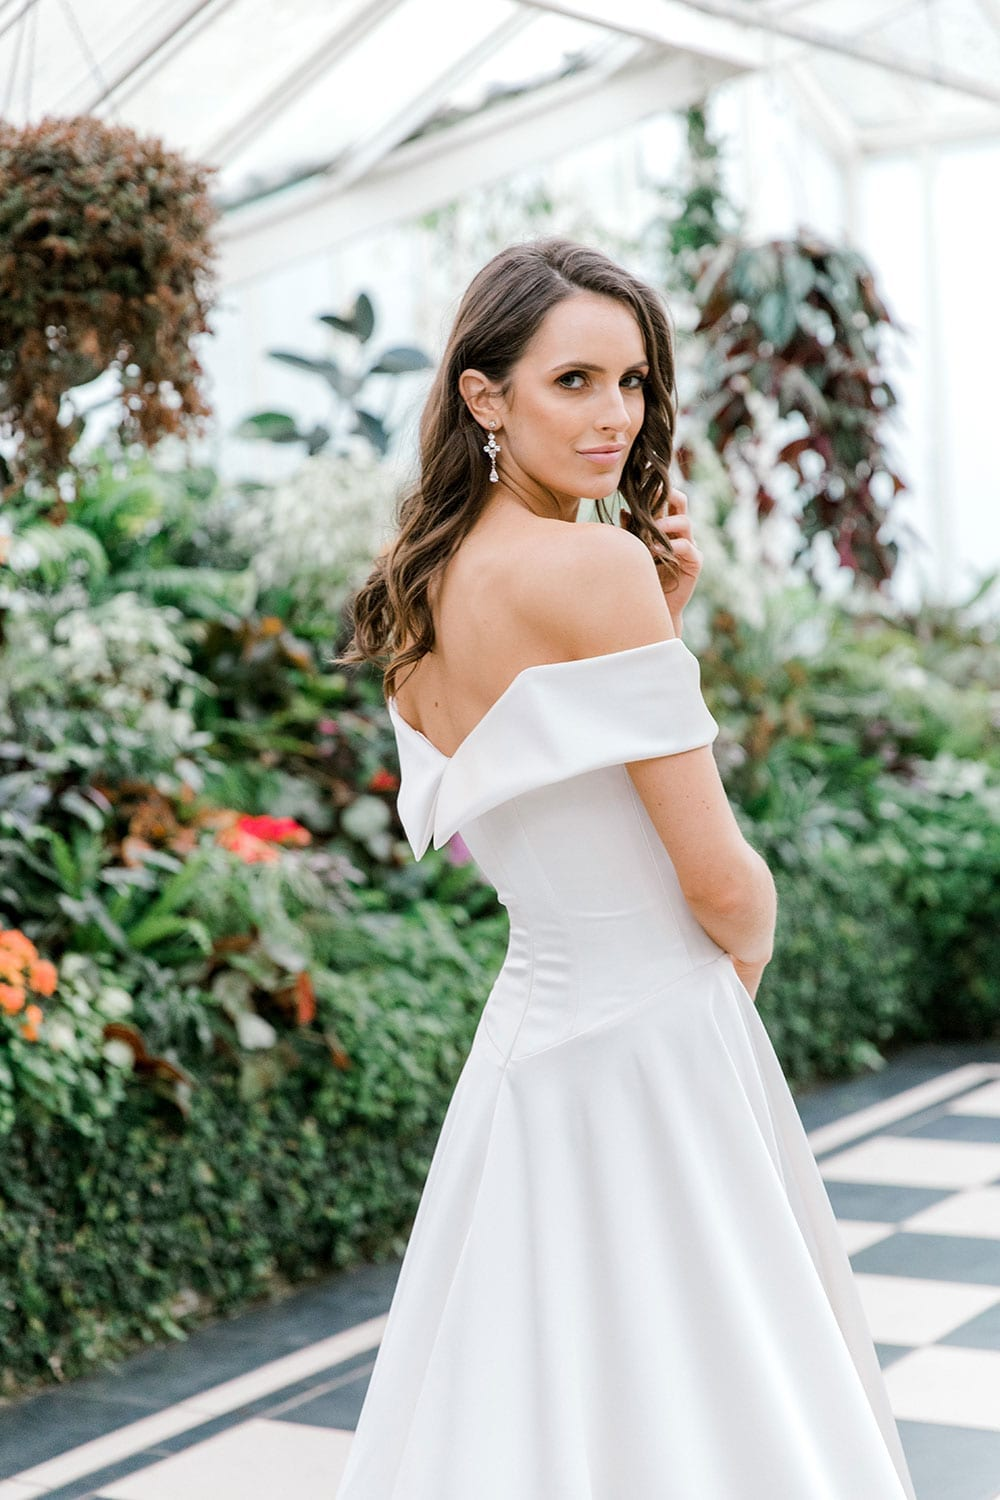 Model wearing Vinka Design Deor Wedding Dress, an Off-Shoulder Satin Wedding Gown facing away showing back of dress inside botanical garden greenhouse